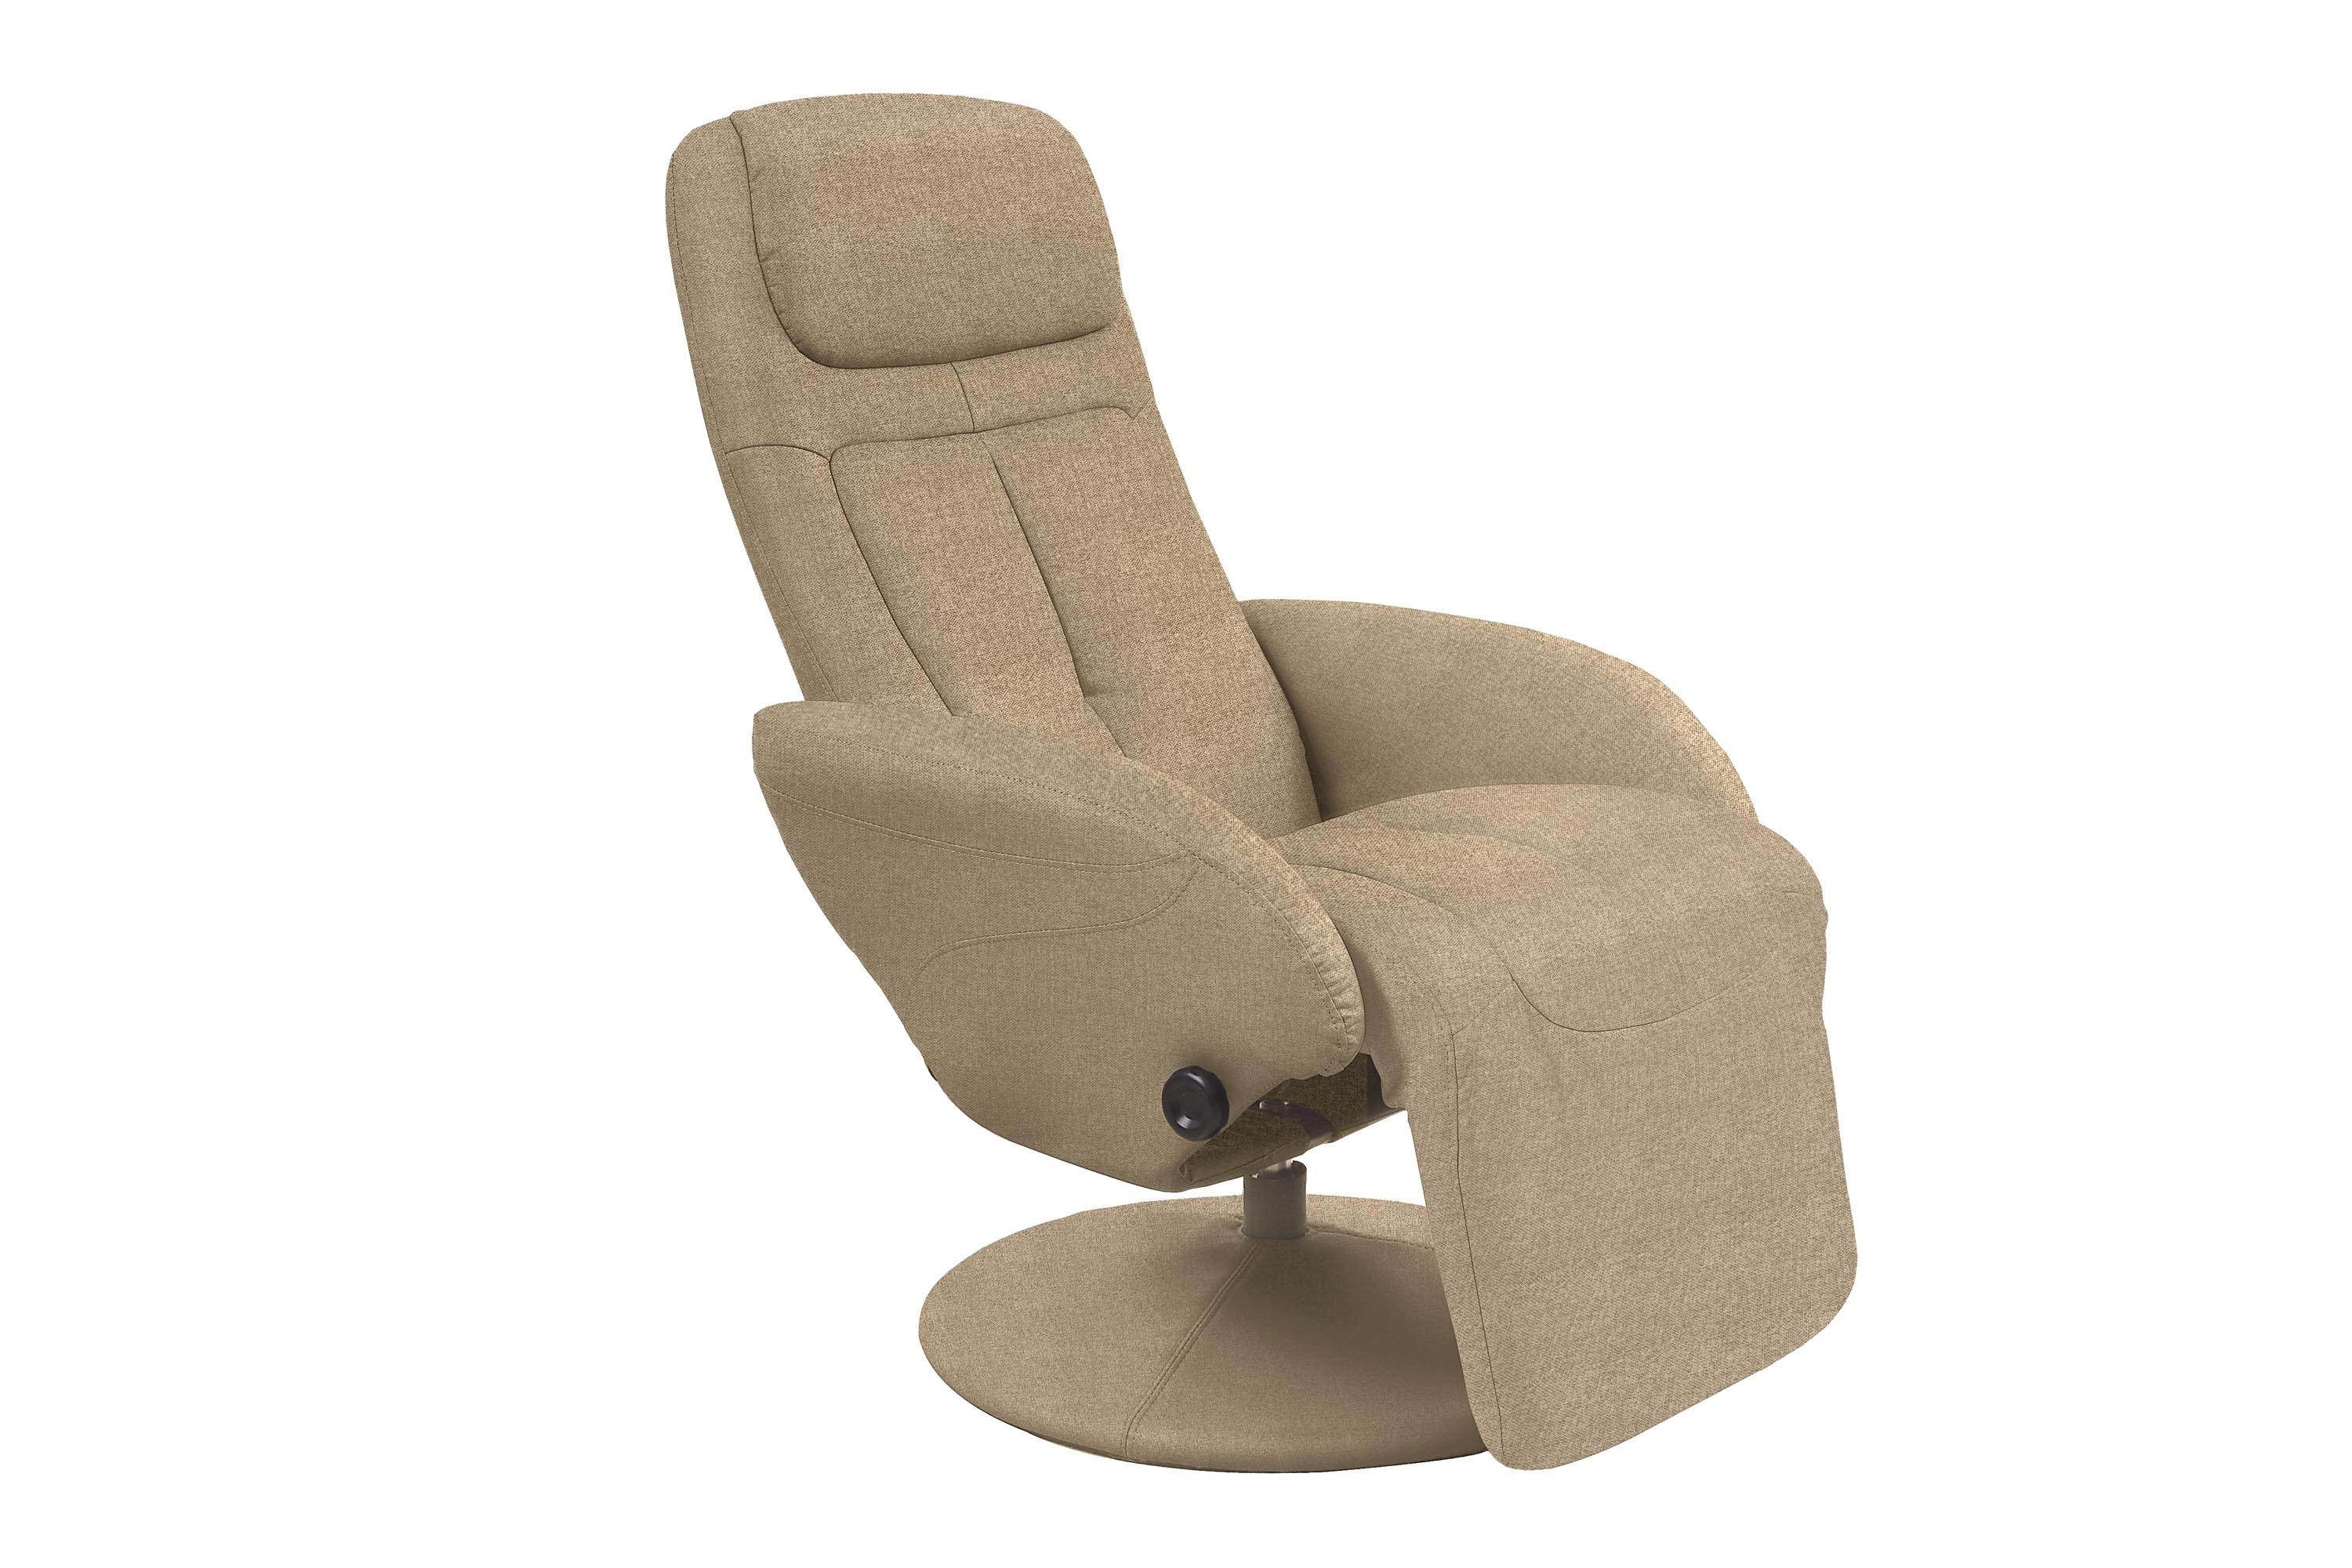 Fotoliu Recliner tapitat cu stofa Optima 2 Bej, l77xA80xH101 cm imagine